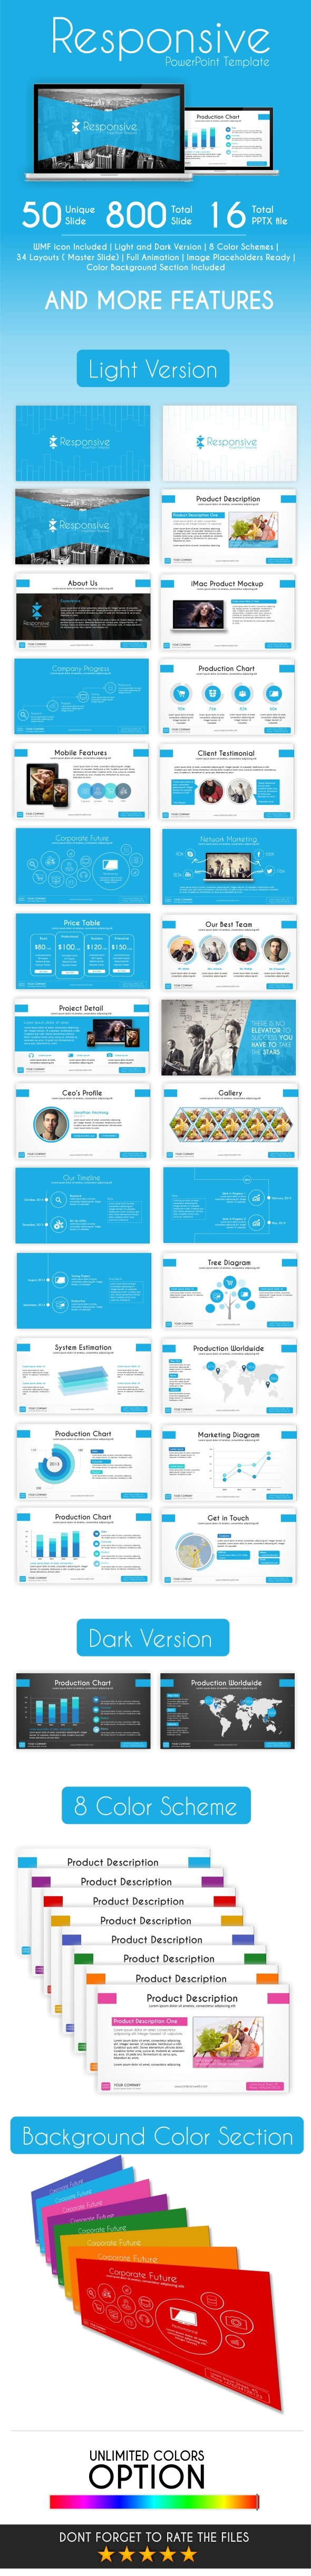 Responsive PowerPoint Template